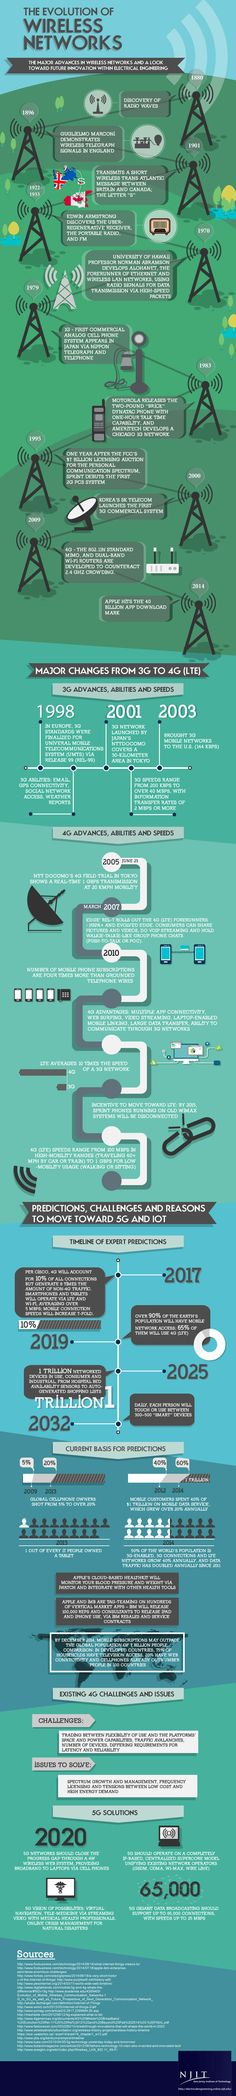 The Evolution of Wireless Networks #infographic #Internet #WirelessNetwork